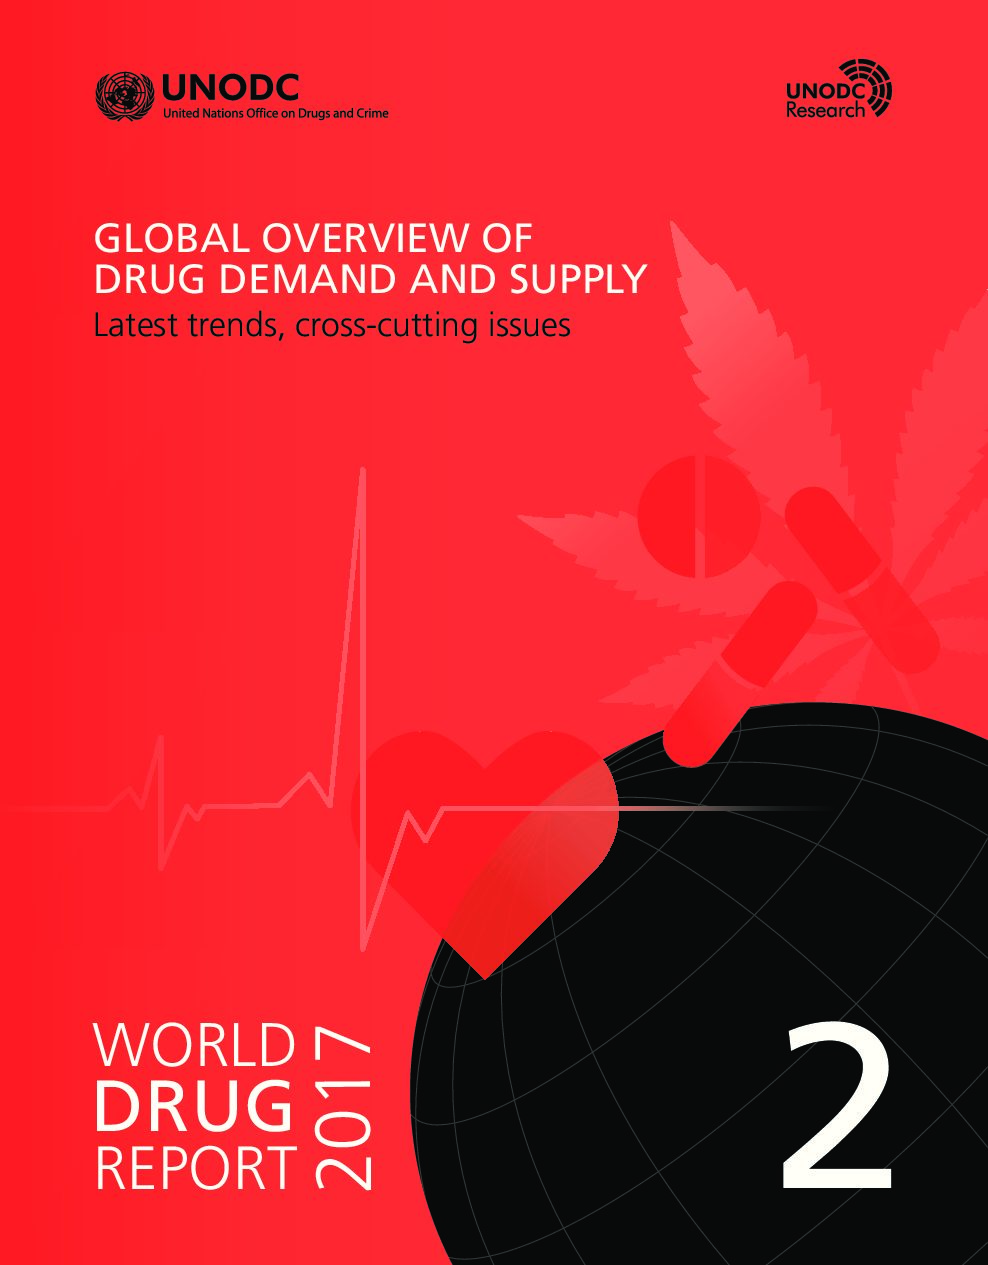 World Drug Report 2017. Part 2. GLOBAL OVERVIEW OF DRUG DEMAND AND SUPPLY Latest trends, cross-cutting issues